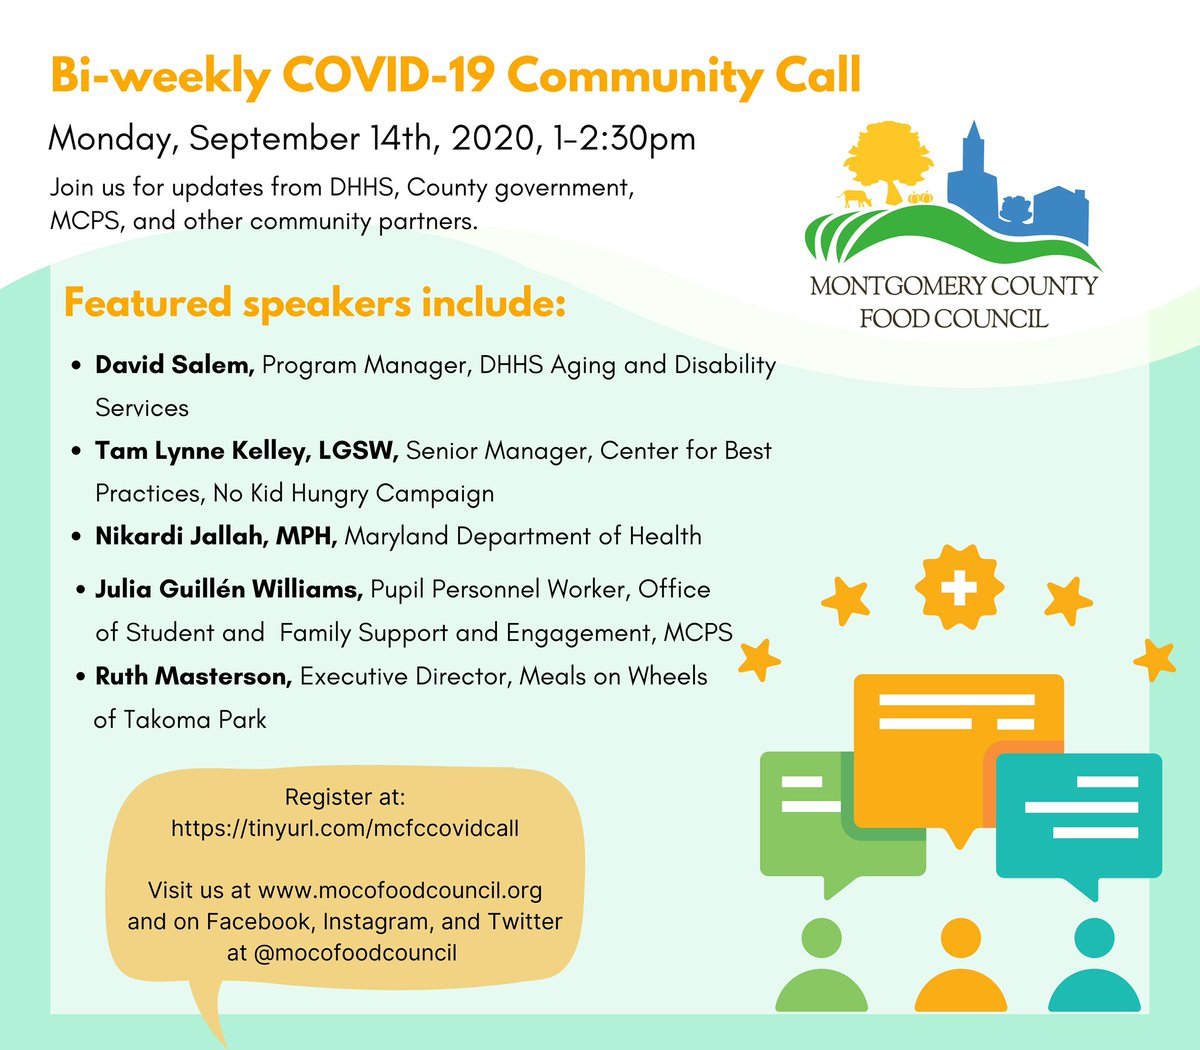 Join us today from 1-2:30pm for our biweekly COVID-19 food security call! Register now: https://t.co/LEPwcbJYP6 https://t.co/iPl9tkIVIc